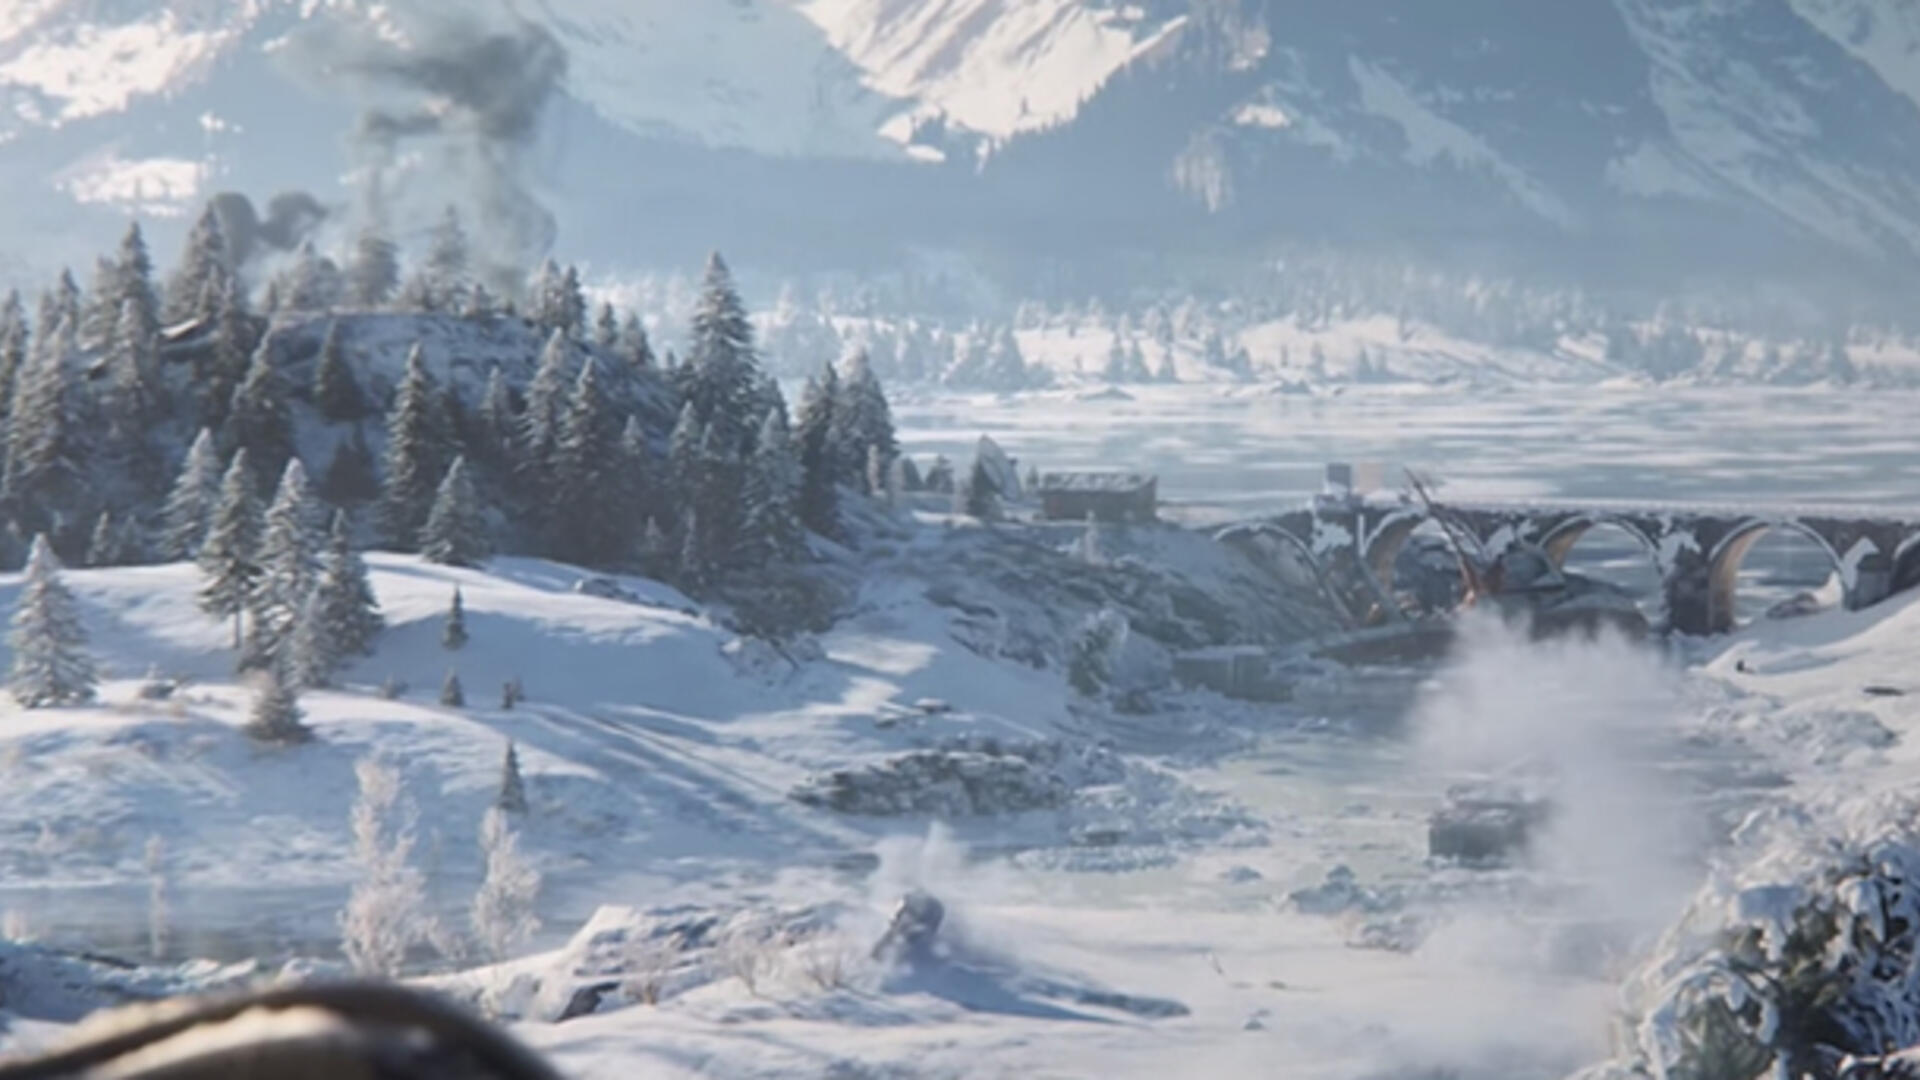 PUBG's Snow Map Vikendi Officially Announced, Playable on PC